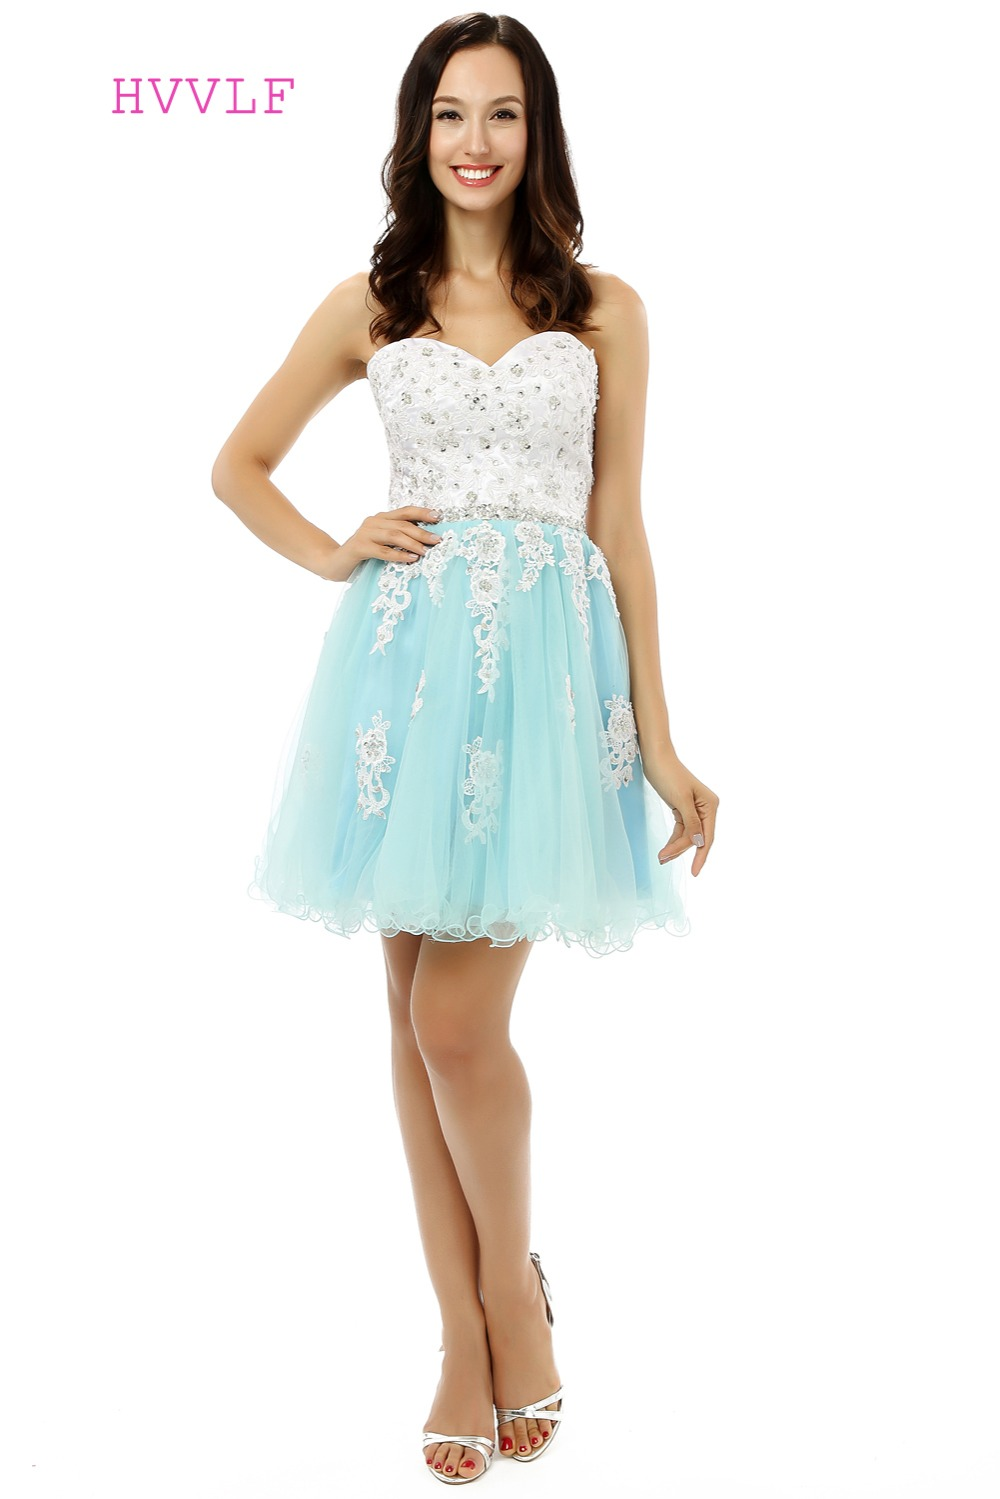 Turquoise Homecoming Dresses A-line Sweetheart Organza Lace Crystals Short Mini Sparkly Sweet 16 Cocktail Dresses 2019